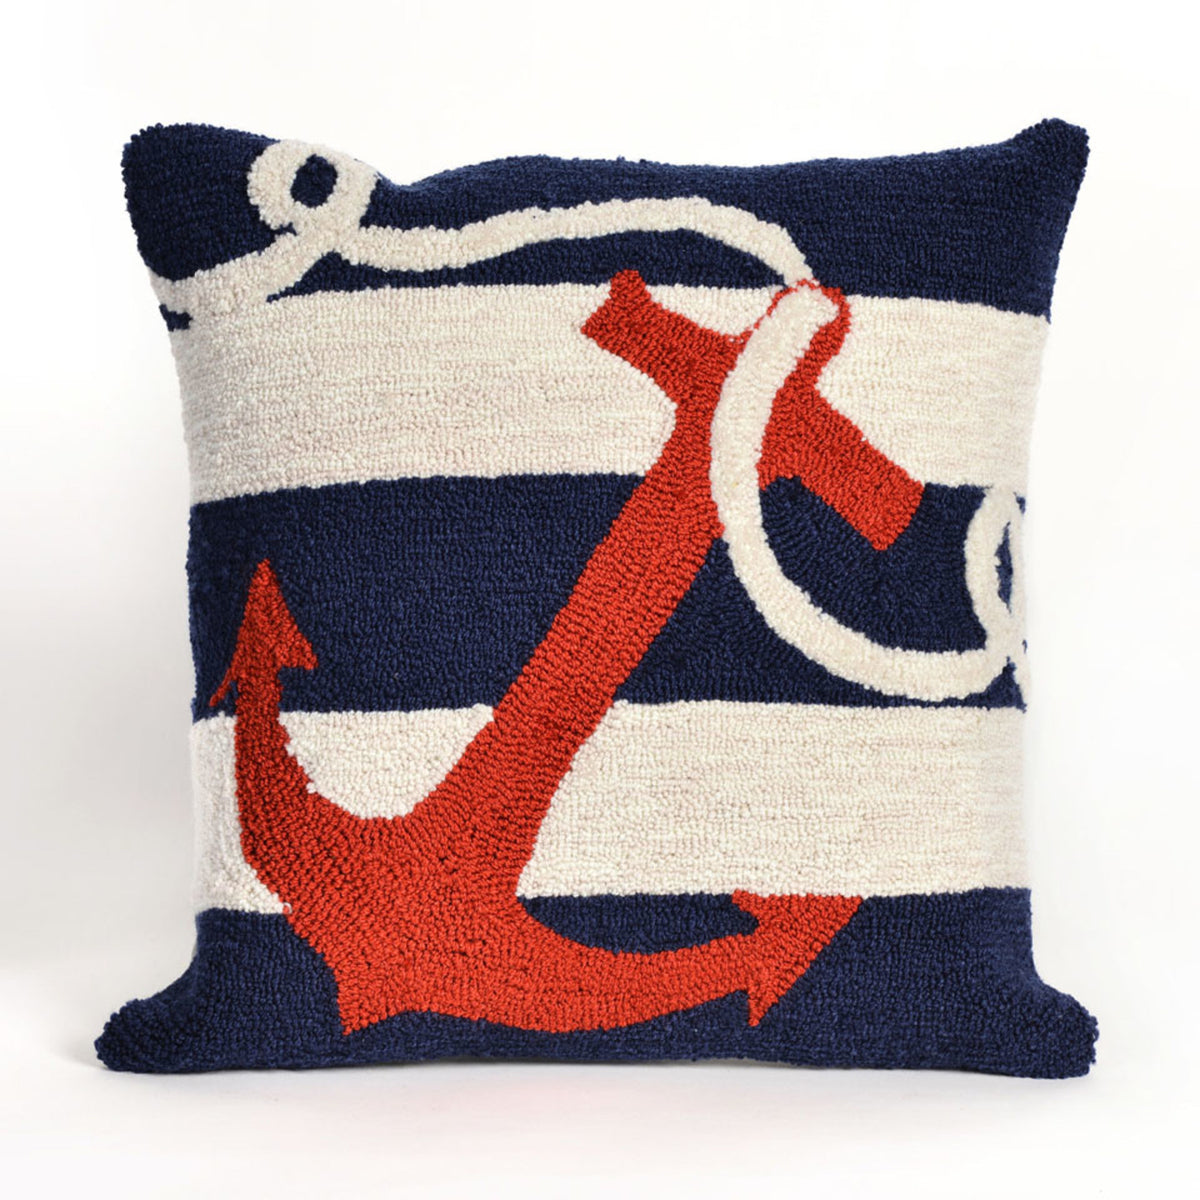 Frontporch Anchor Navy Pillows